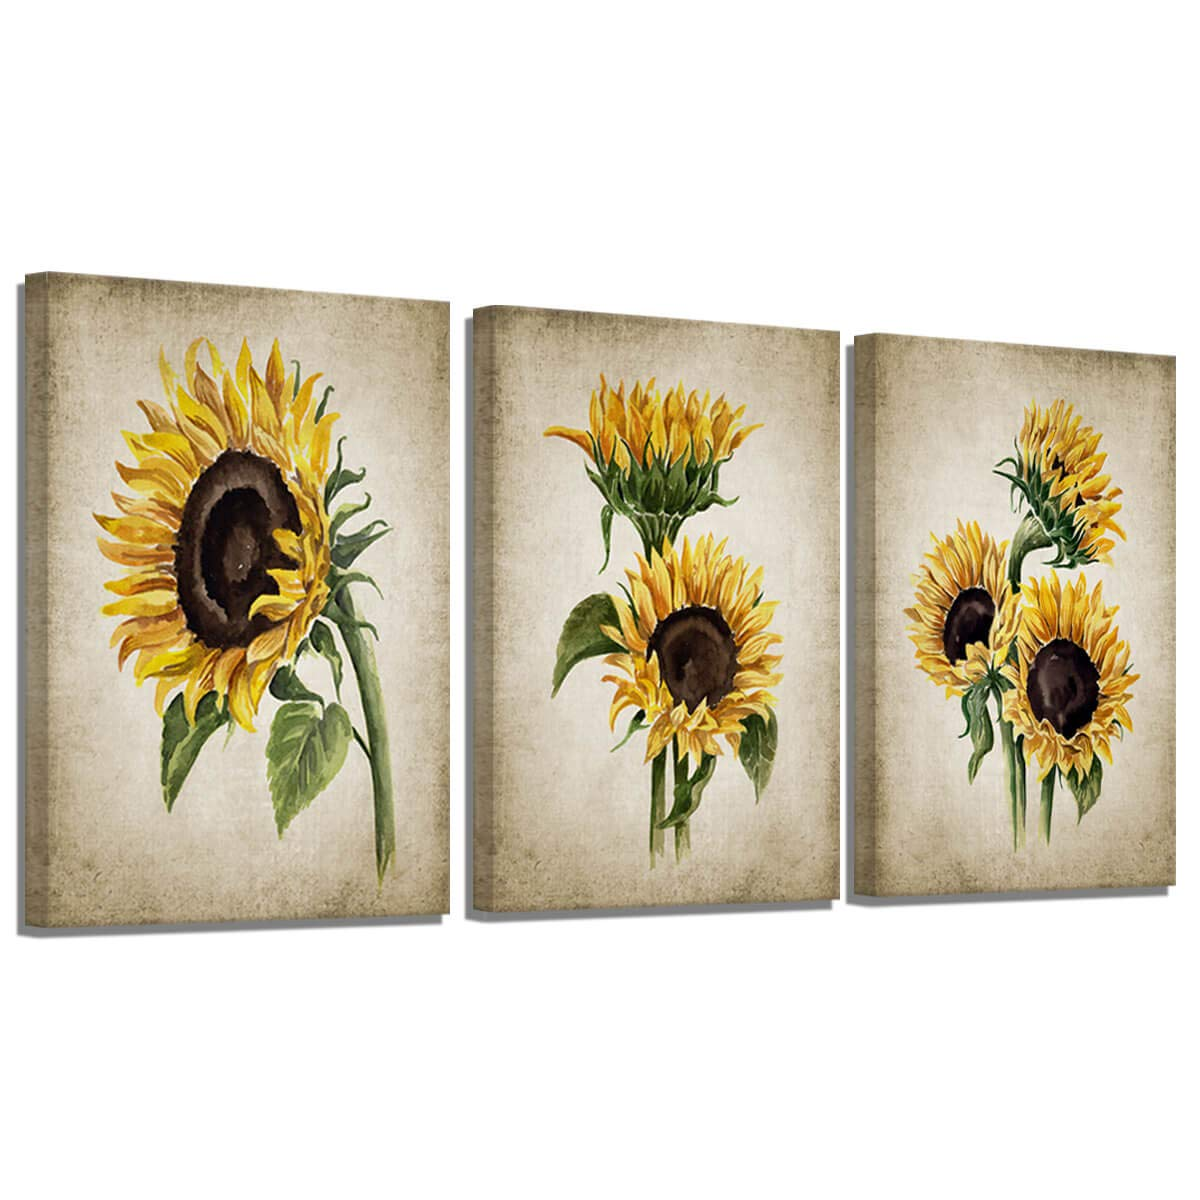 Amazon Com Sunflower Kitchen Decor Simple Life Rustic Wall Decor Vintage Watercolor Sunflower Wall Pictures For Bedroom 3 Pieces Canvas Wall Art Flower Painting Kitchen Wall Decor For Women Gallery Wrapped Home